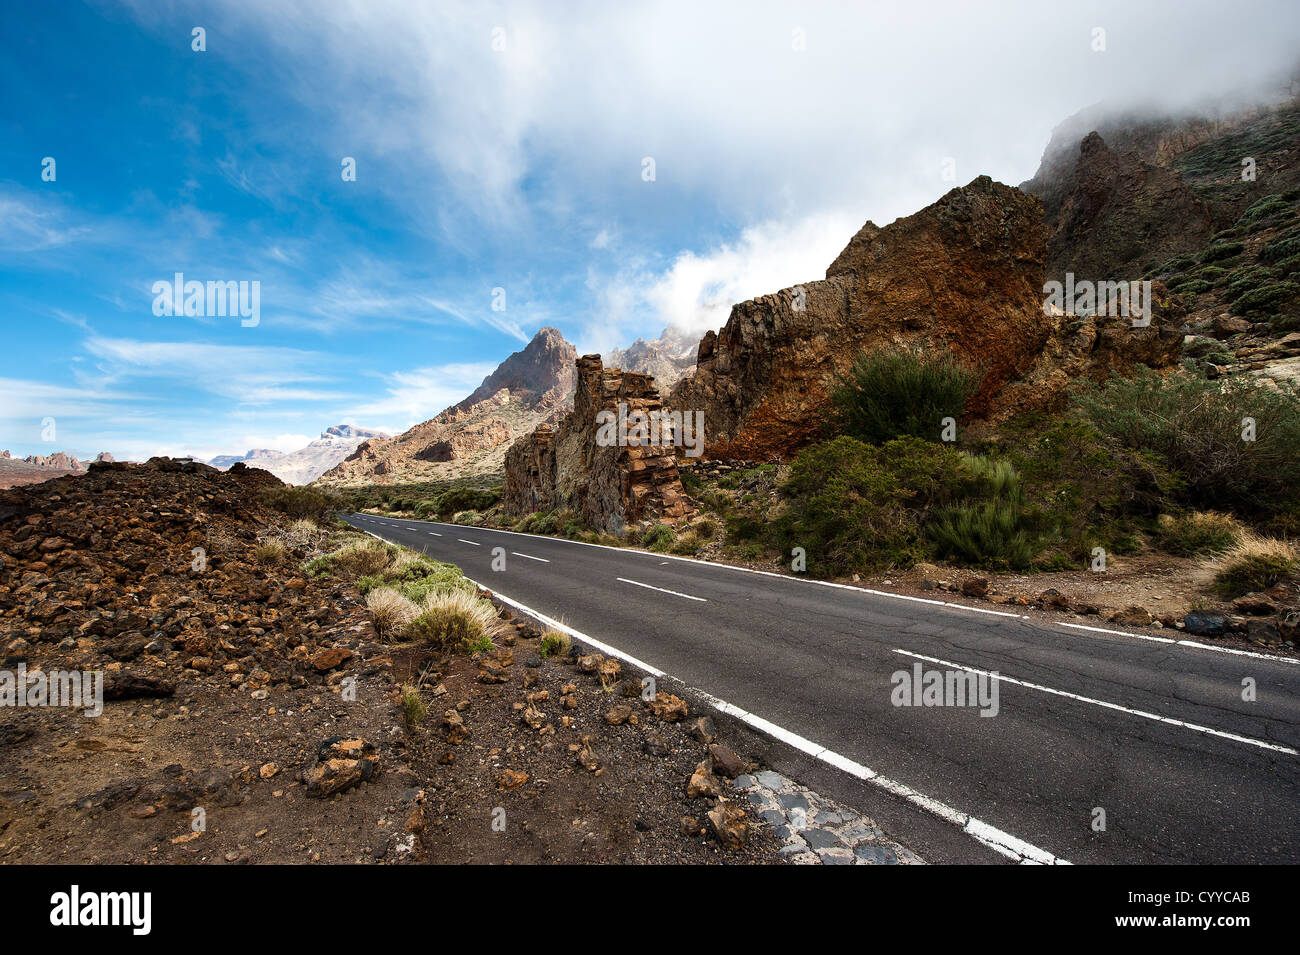 View volcanic desert road in mountain, located in the mountains of the island of Grand Canary in the Canary Islands - Stock Image